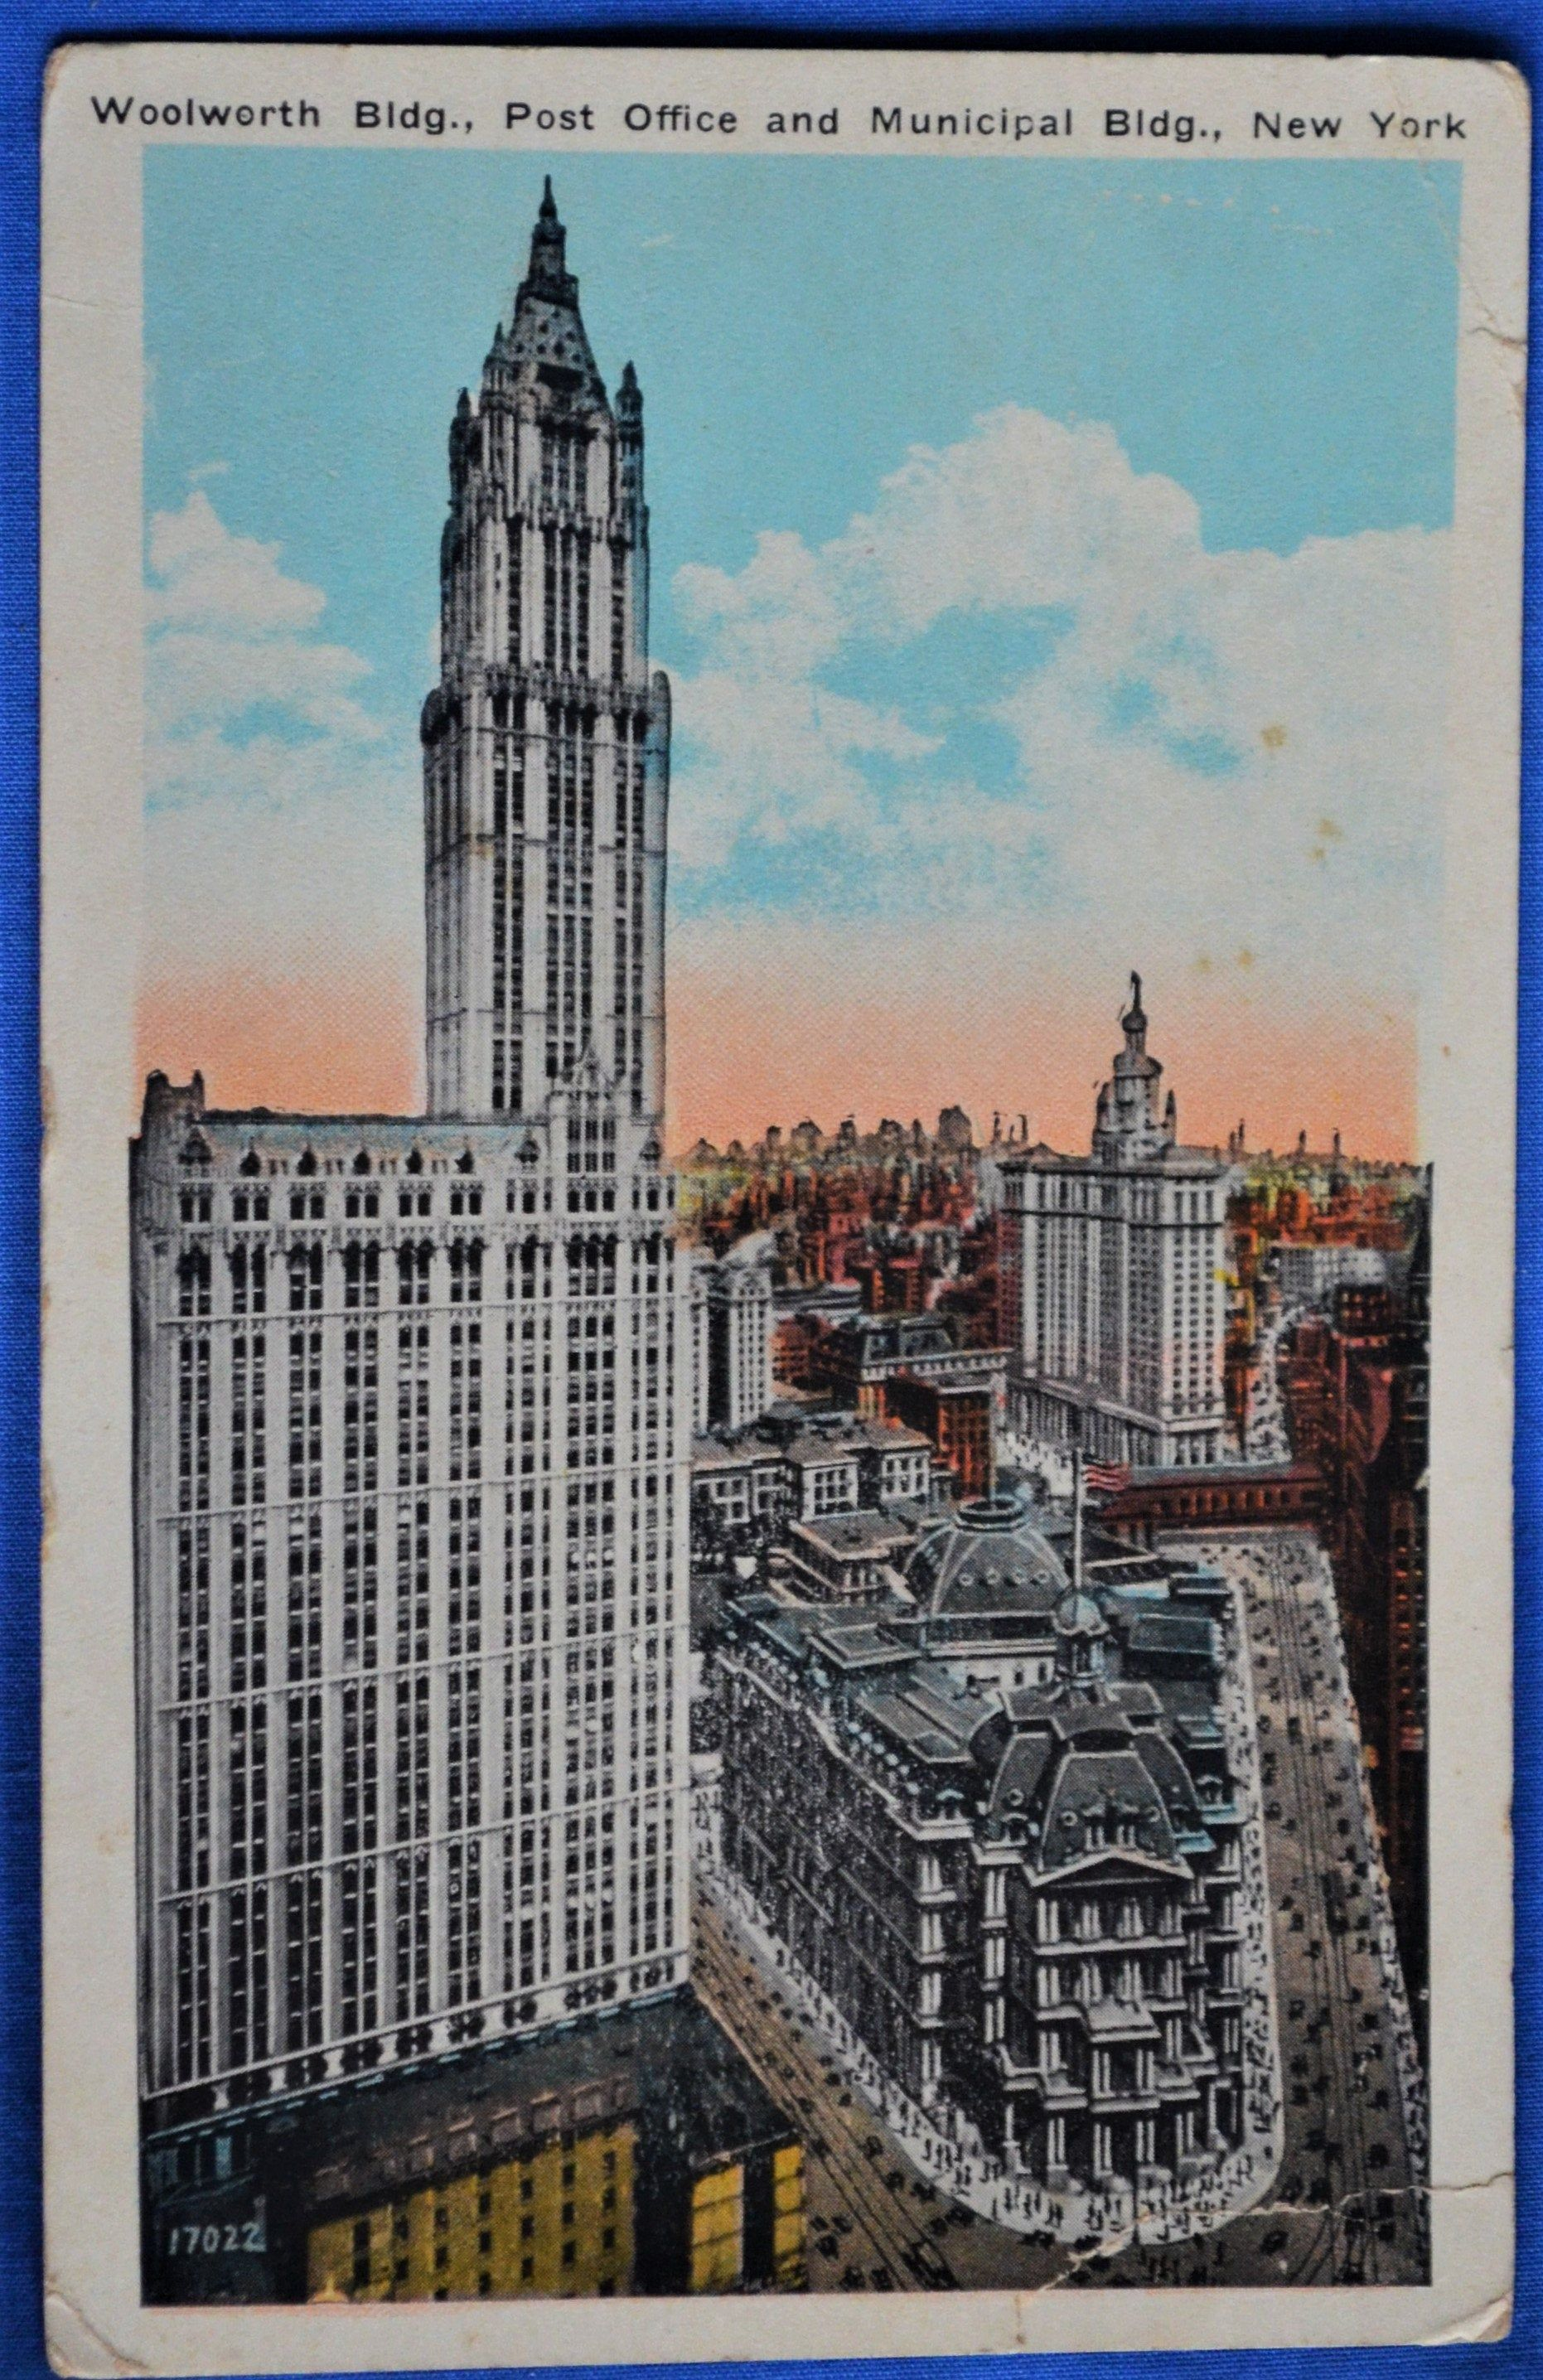 Woolworth Post Office Municipal Building New York Ny White Border Postcard In 2020 Woolworth Building Post Office Building